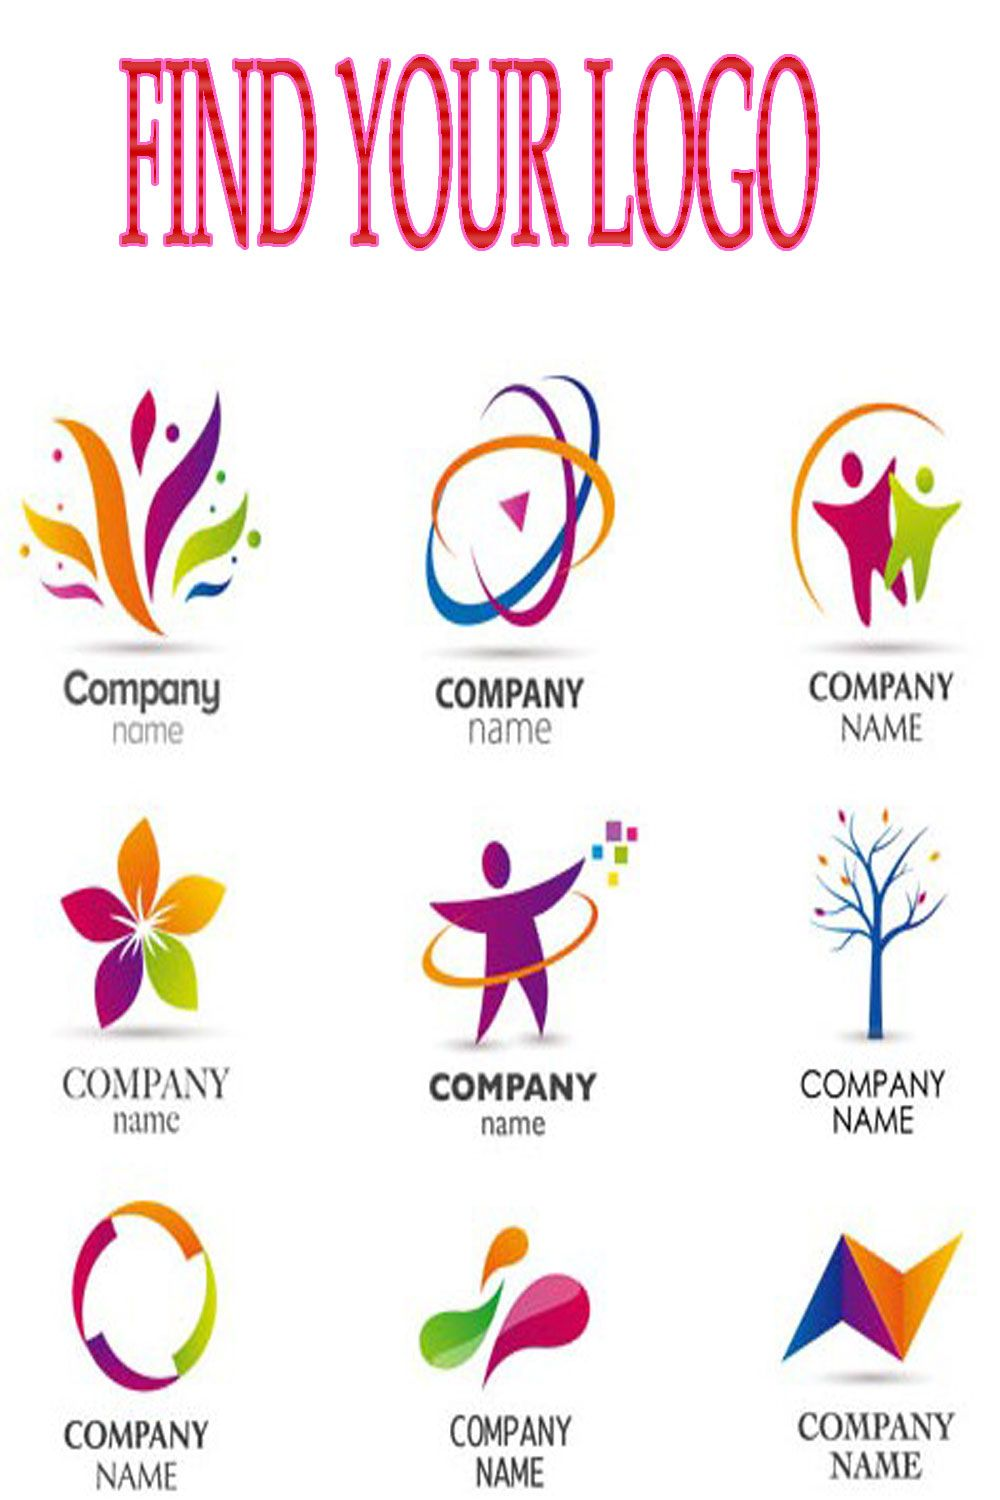 alaminsujon I will design creative and modern logo for